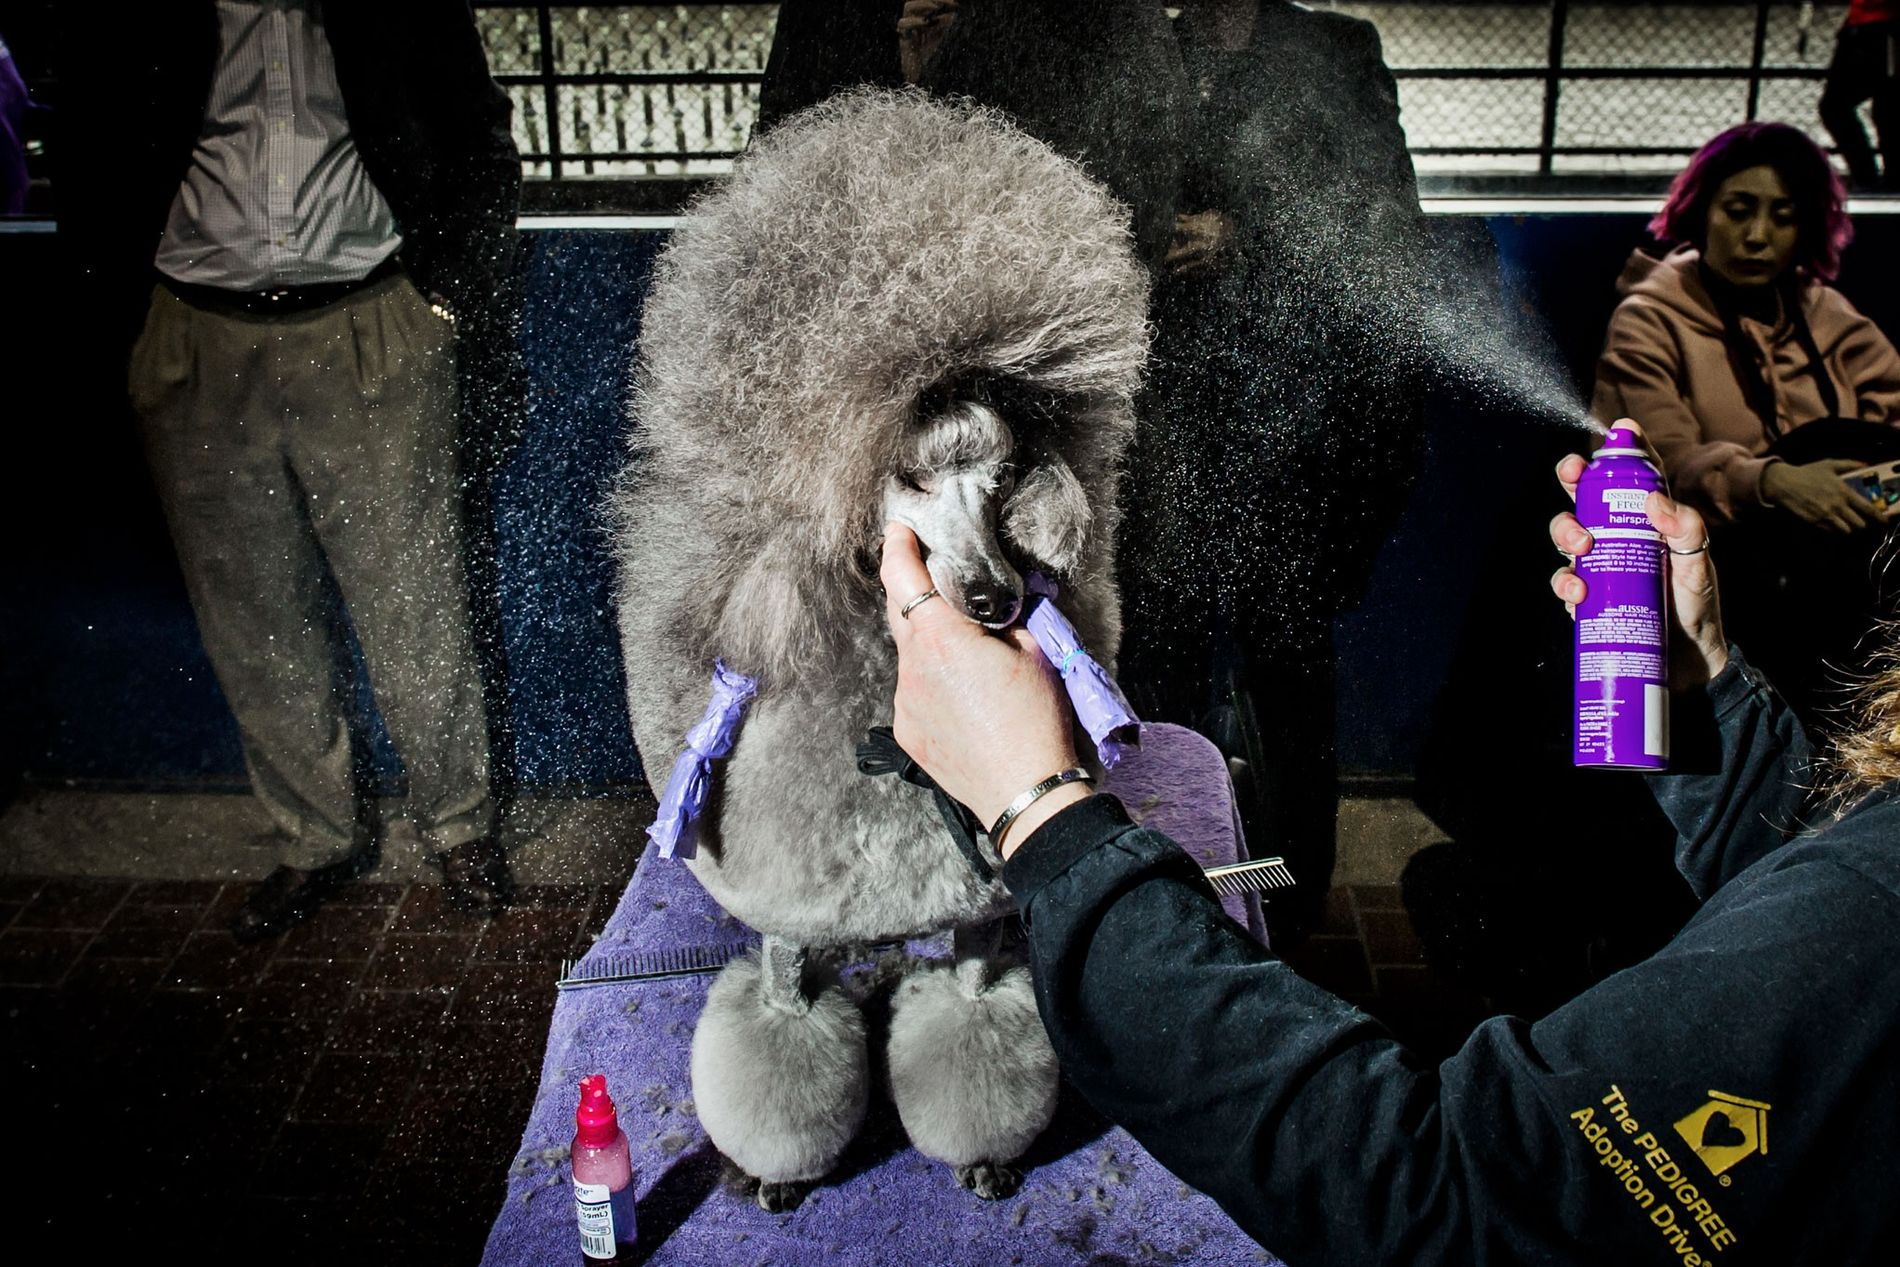 Savannah, a three-year-old poodle from Minnesota, gets spritzed with hair spray at the 142nd Westminster Dog ...